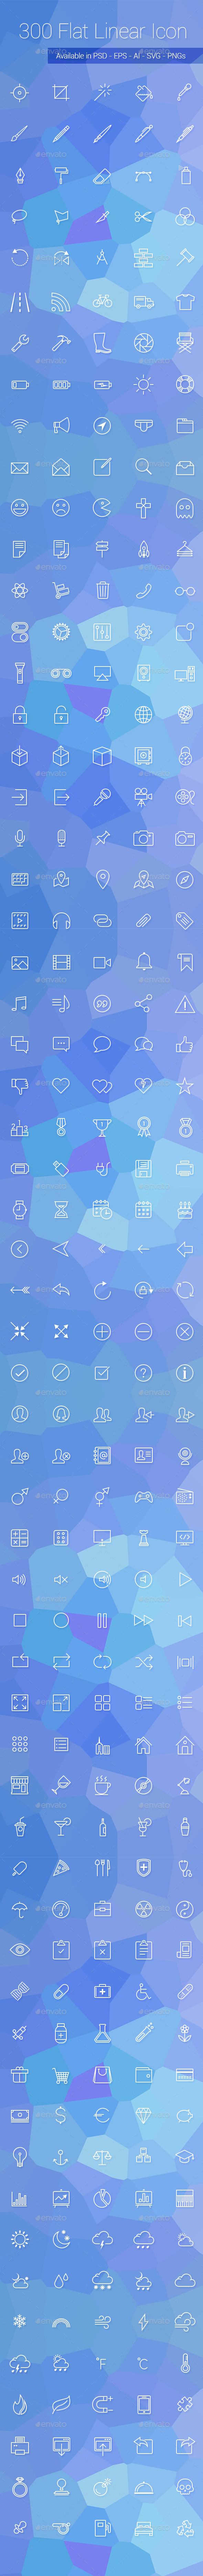 GraphicRiver 300 Flat Linear Icon Set 8826790